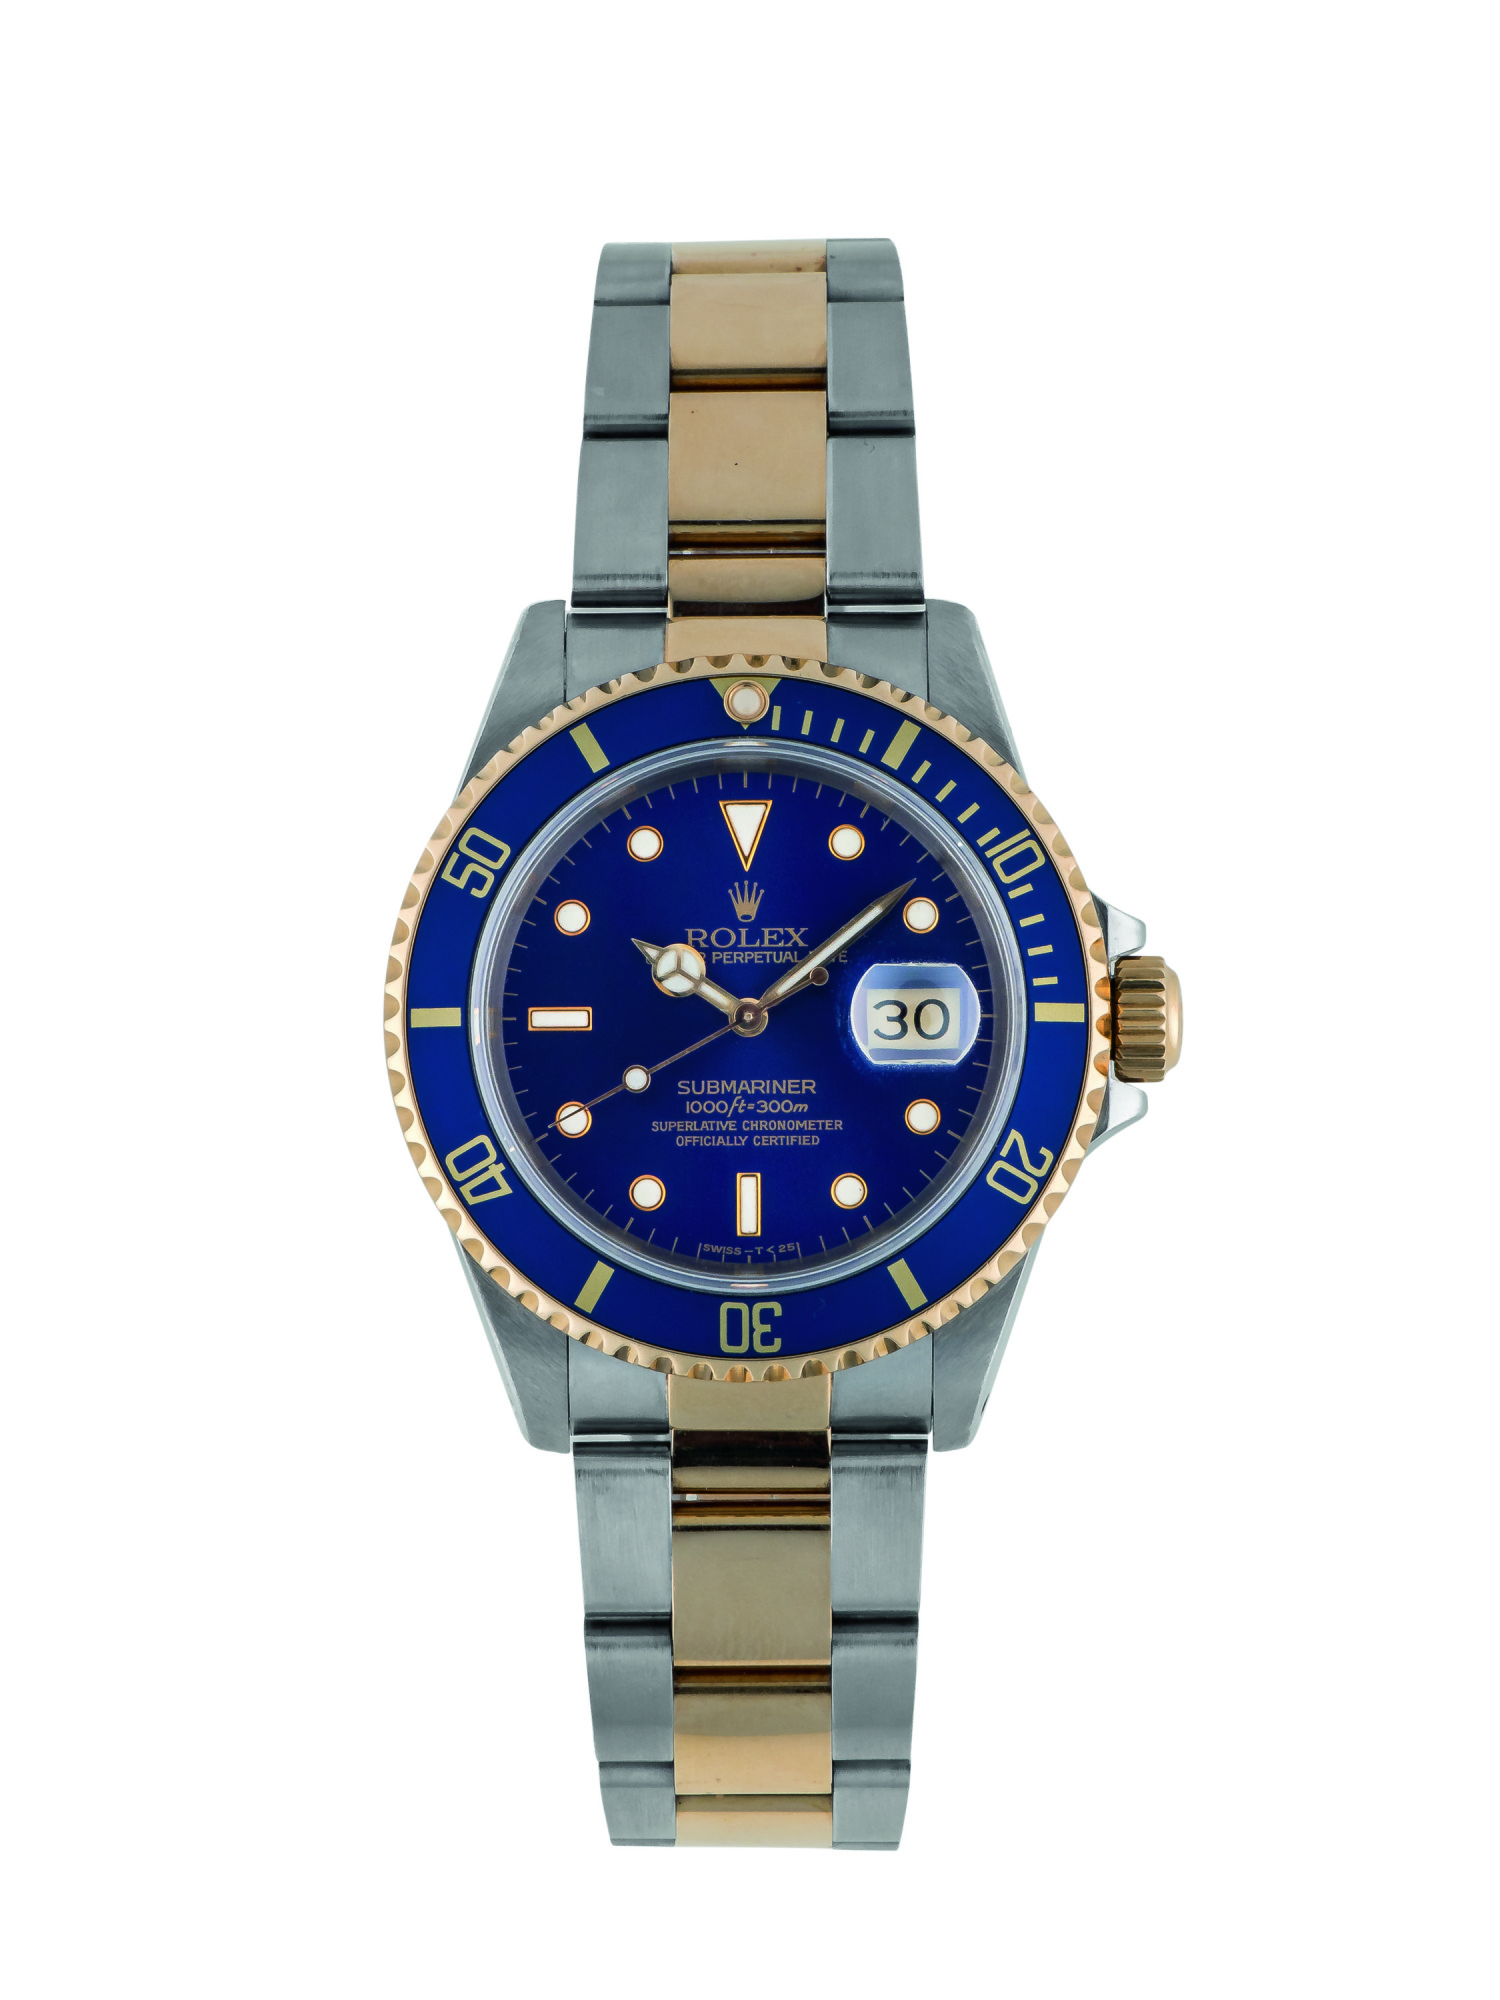 ROLEX   SUBMARINER, REF 16613 STAINLESS STEEL AND YELLOW GOLD WRISTWATCH WITH DATE AND BRACELET CIRCA 1991